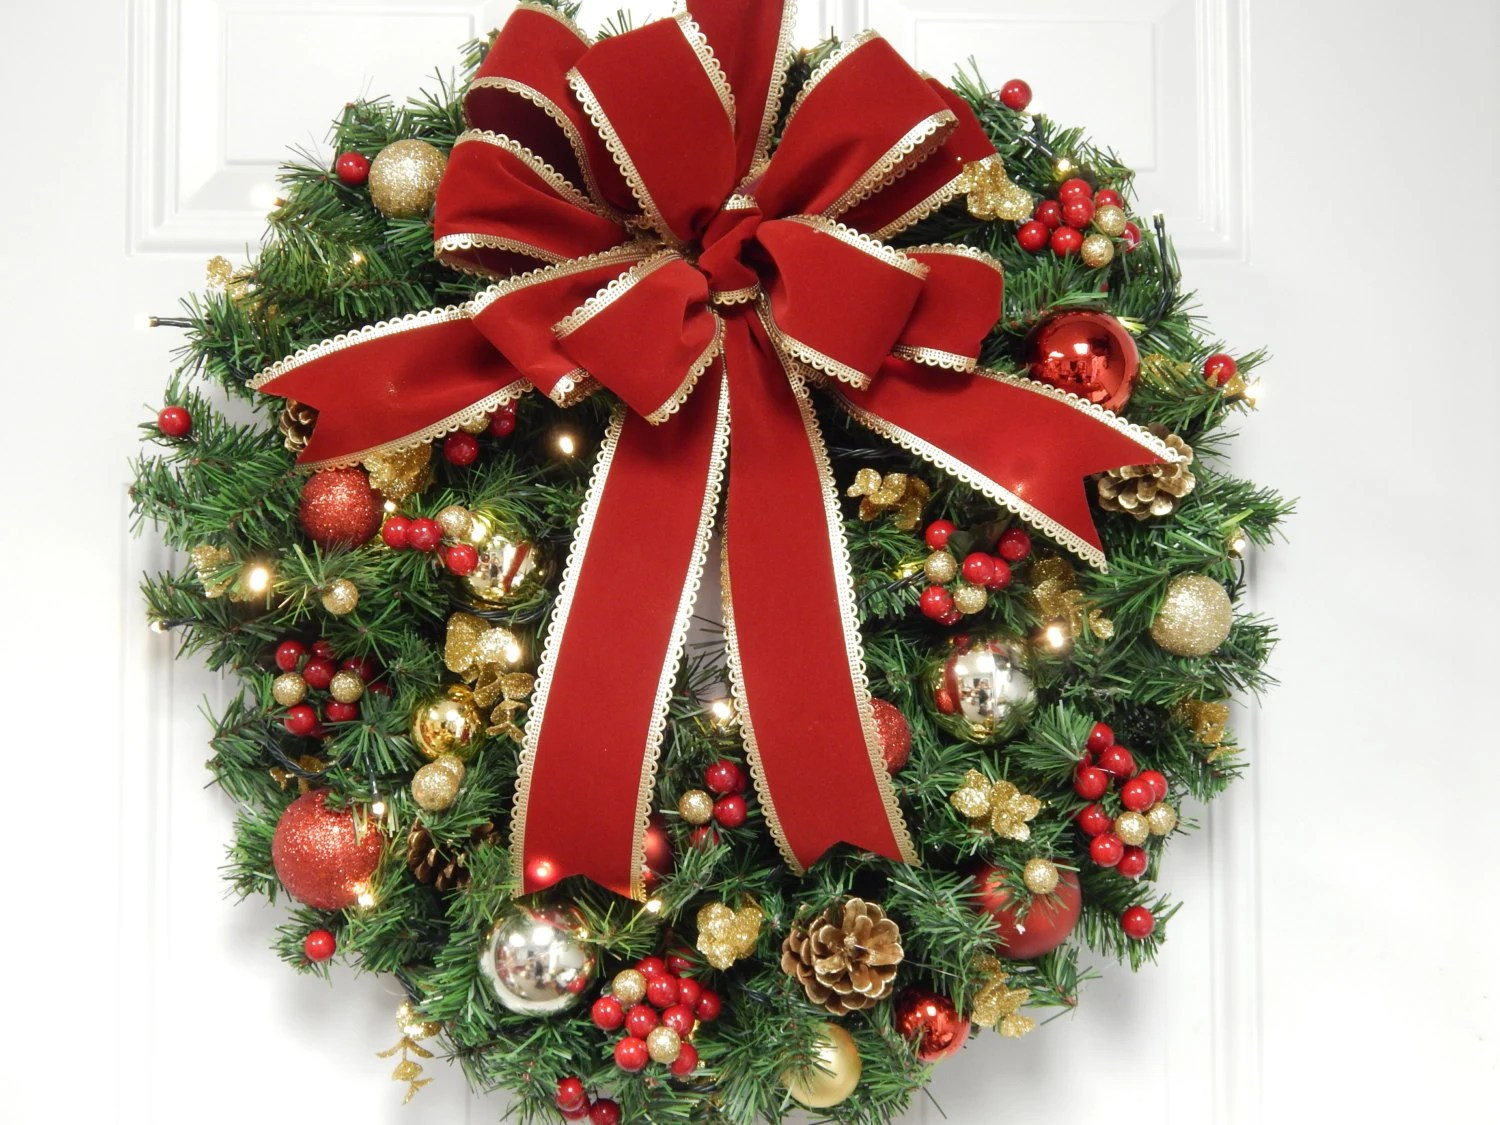 36 Inch Artificial Christmas Wreaths